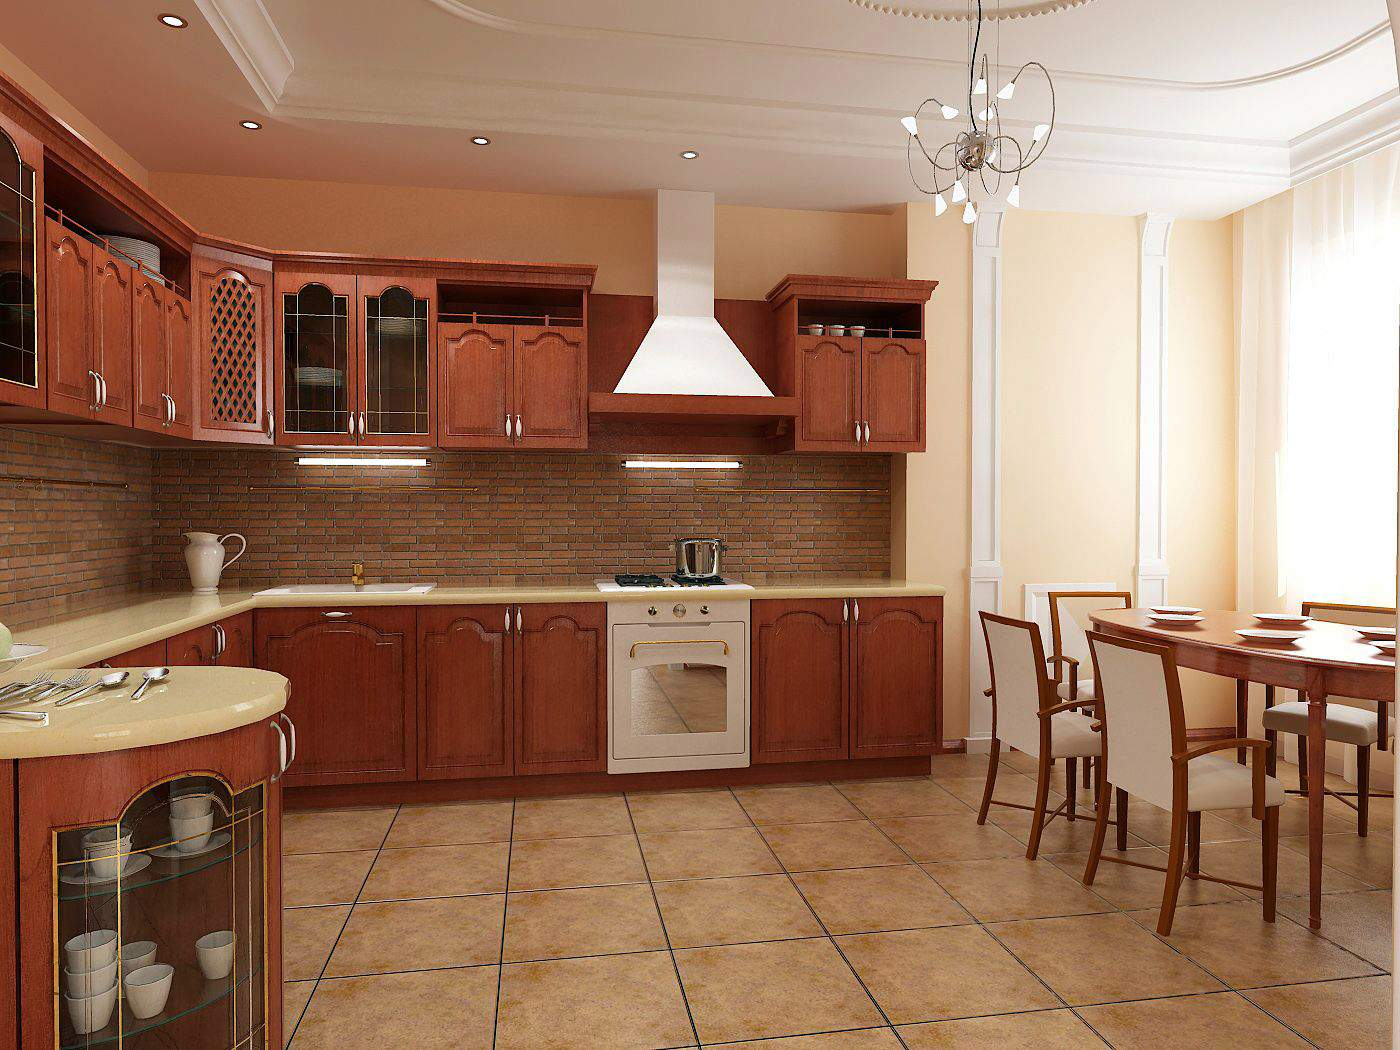 Small Interiors Of Basic Kitchen Design (Image 14 of 16)